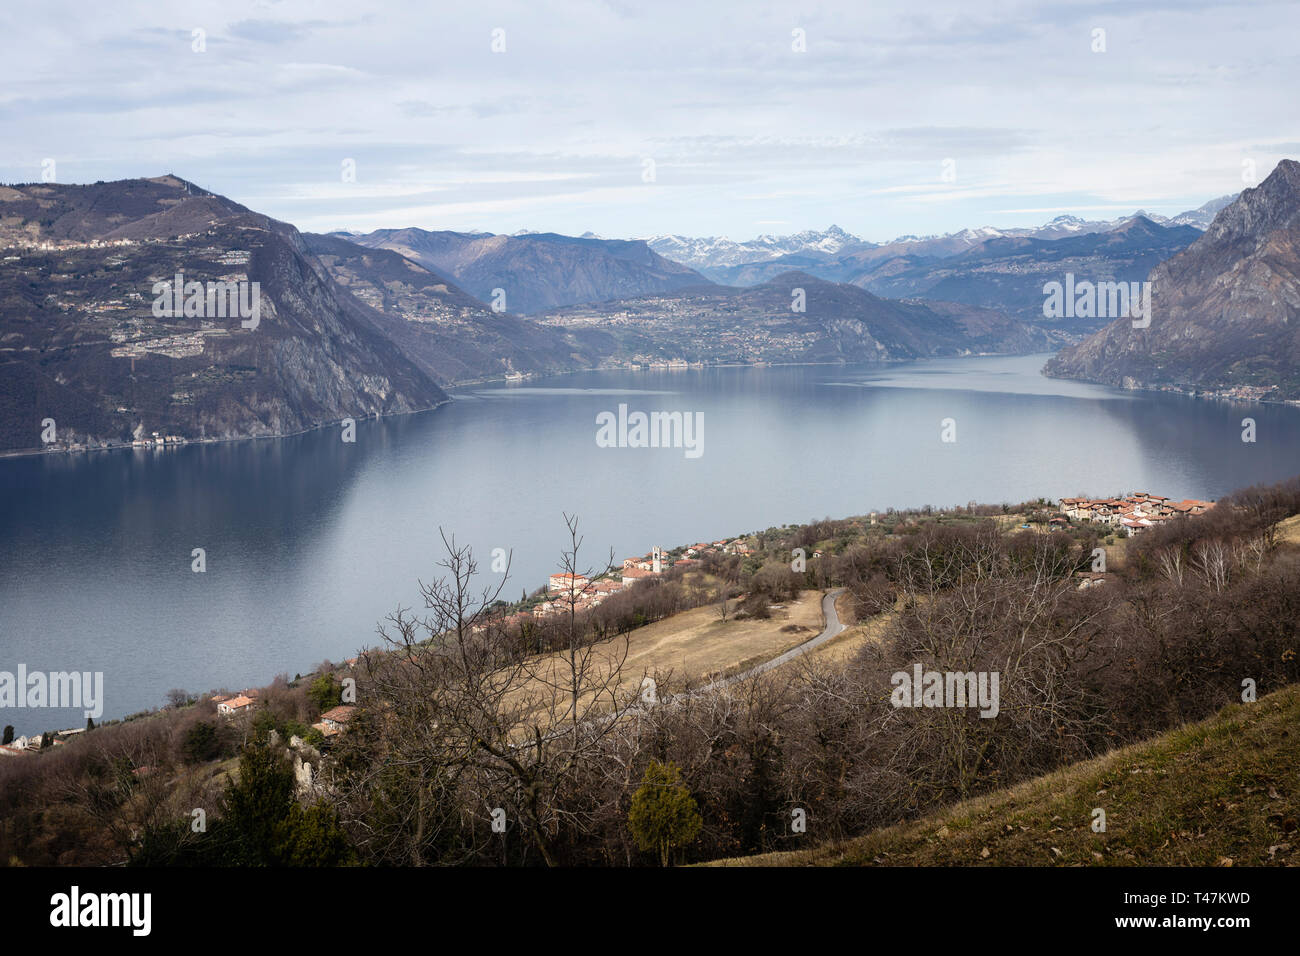 Lake Iseo seen from Monte Isola island, Lombardy, Italy - Stock Image